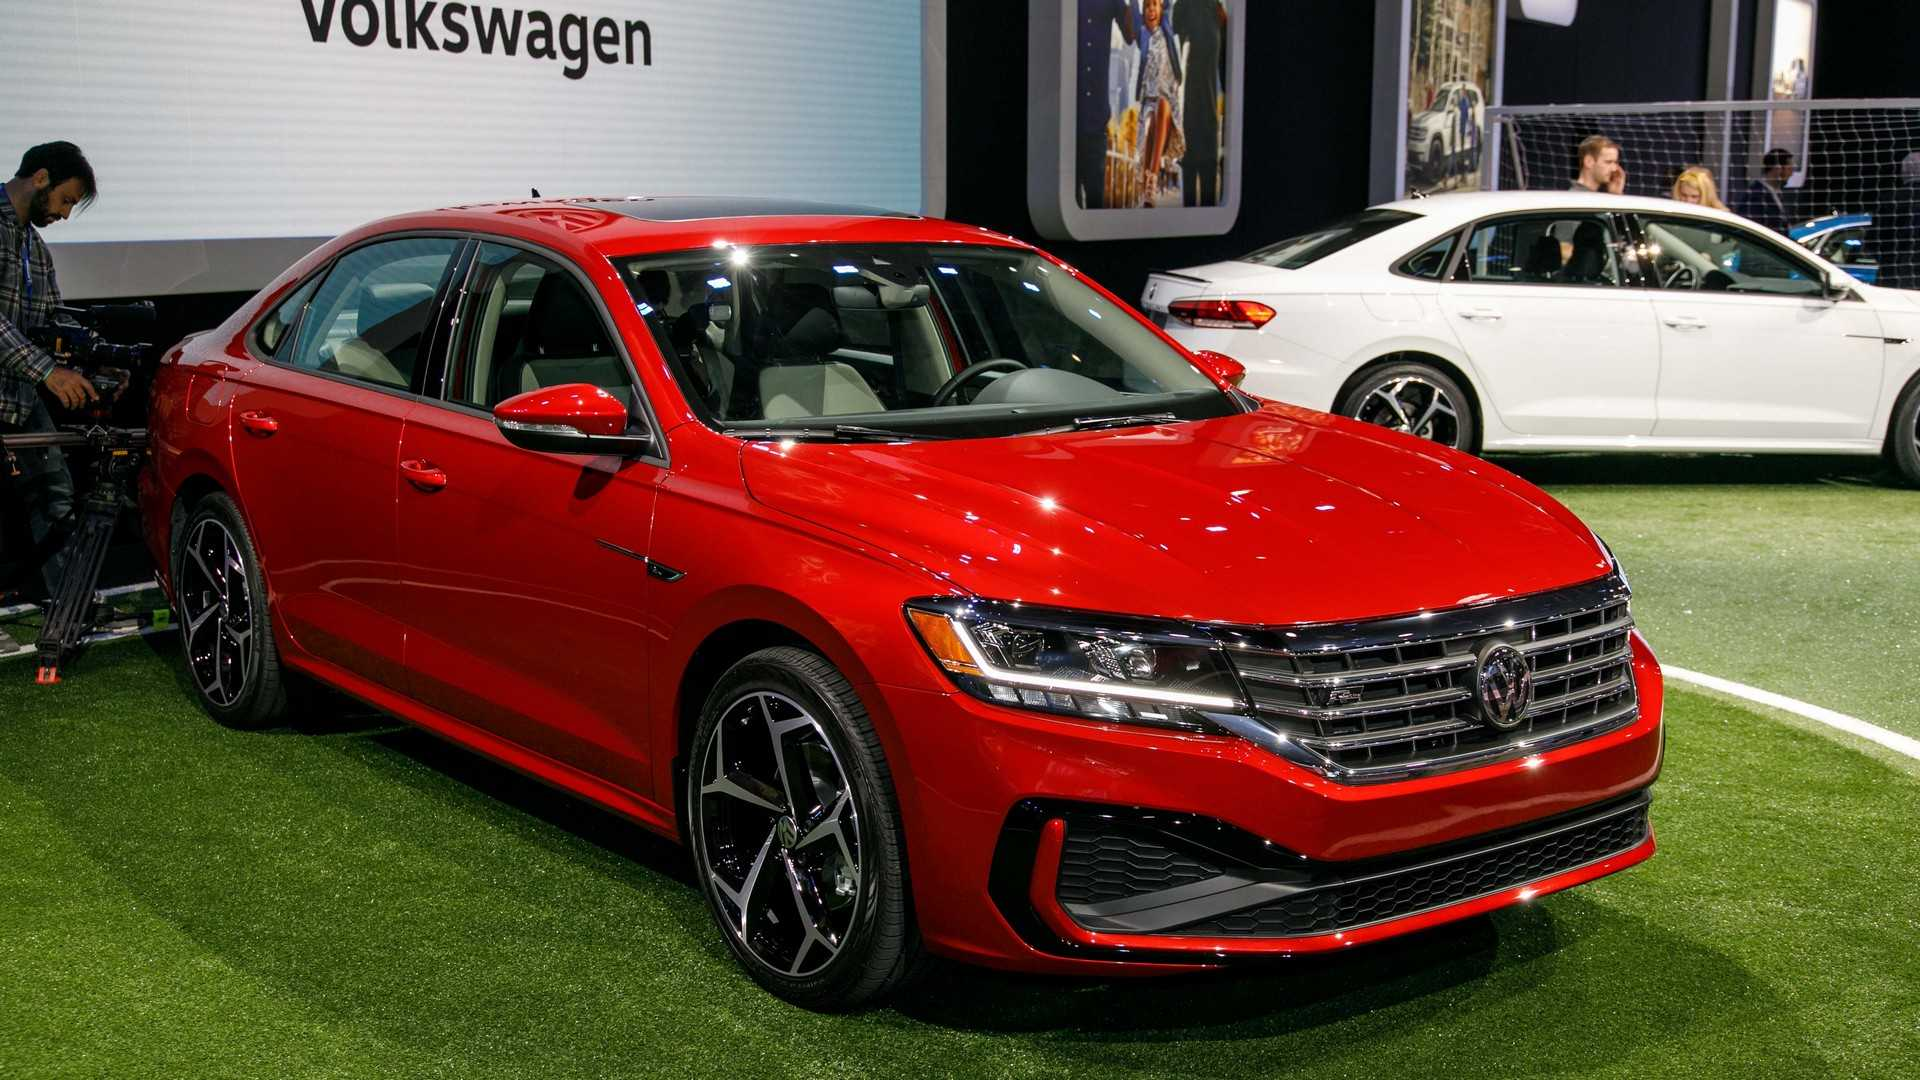 21 The Volkswagen Passat 2020 Usa Price And Release Date